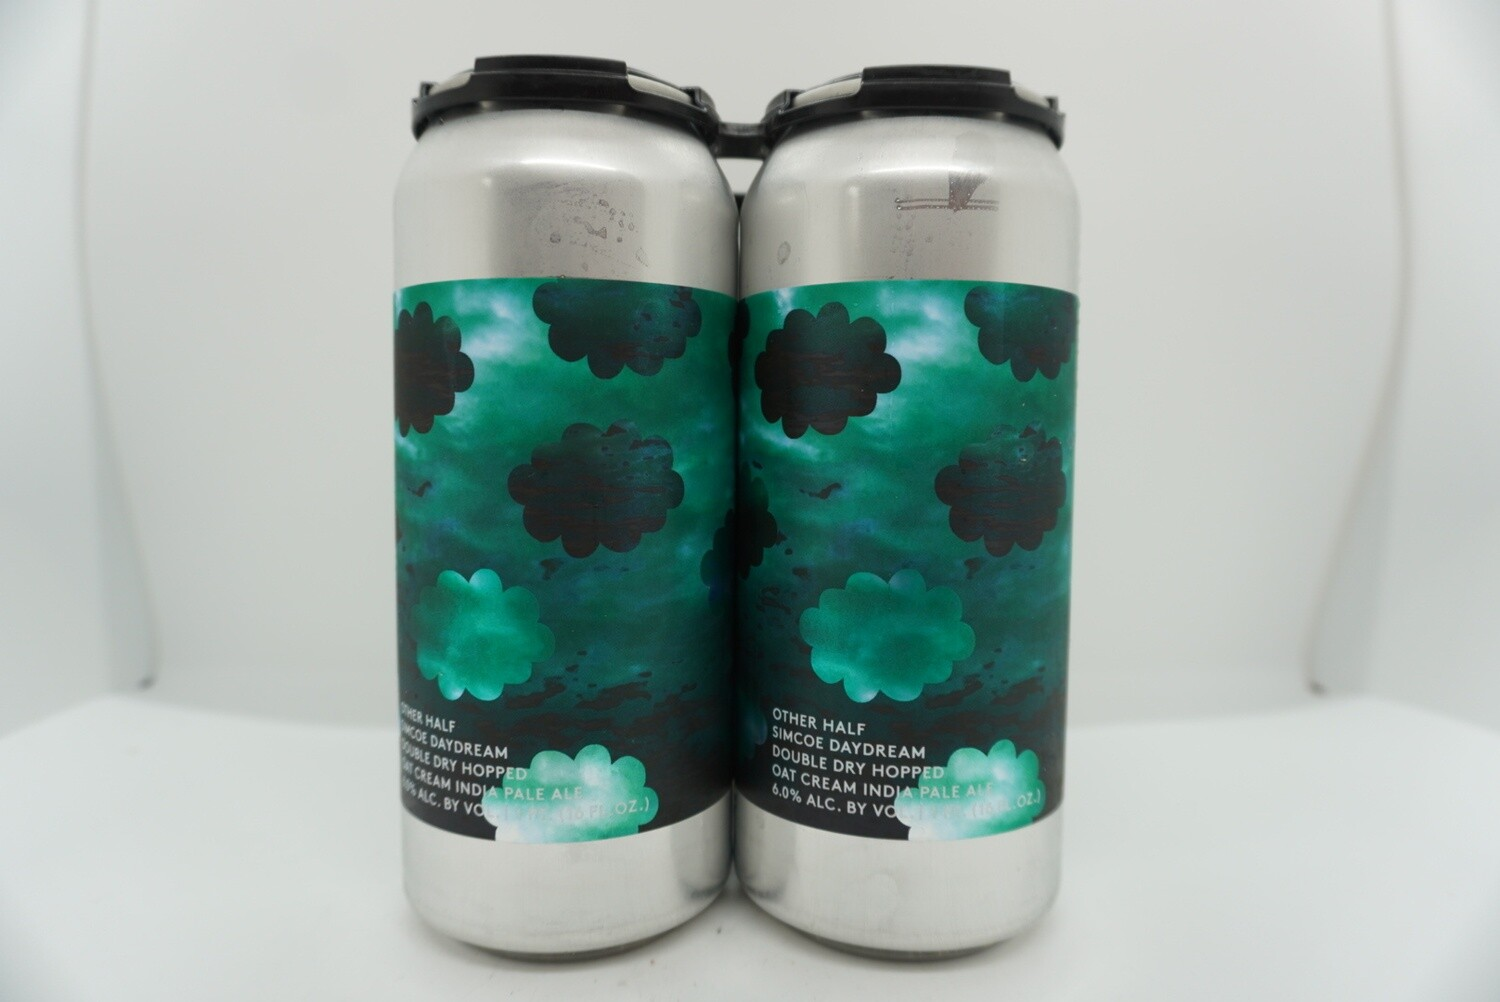 Other Half - DDH Simcoe Daydream - IPA - 6% ABV - 4 Pack